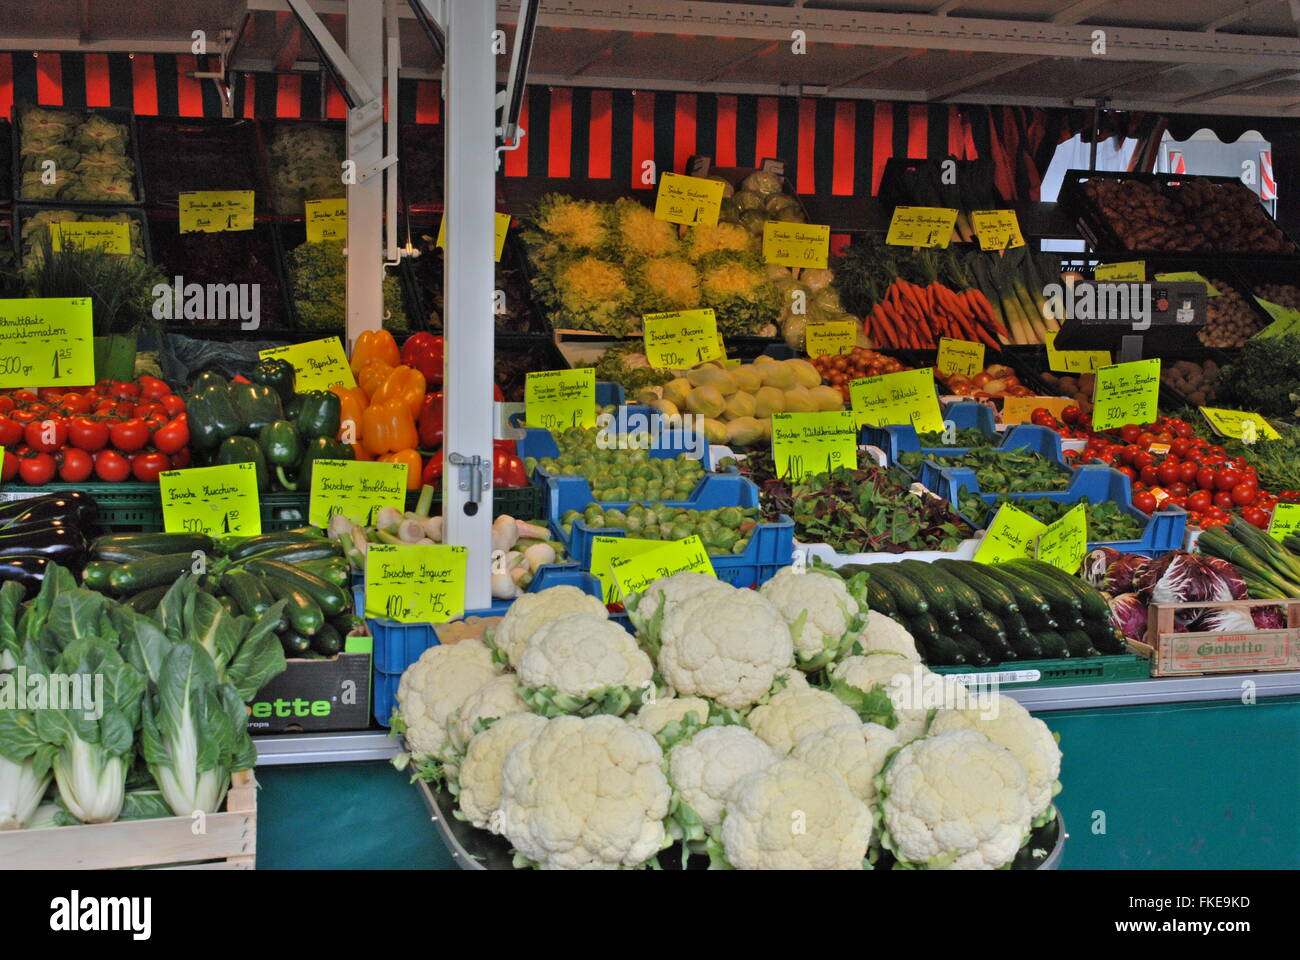 Vegetables on the market place in bonn germany stock photo vegetables on the market place in bonn germany sciox Images